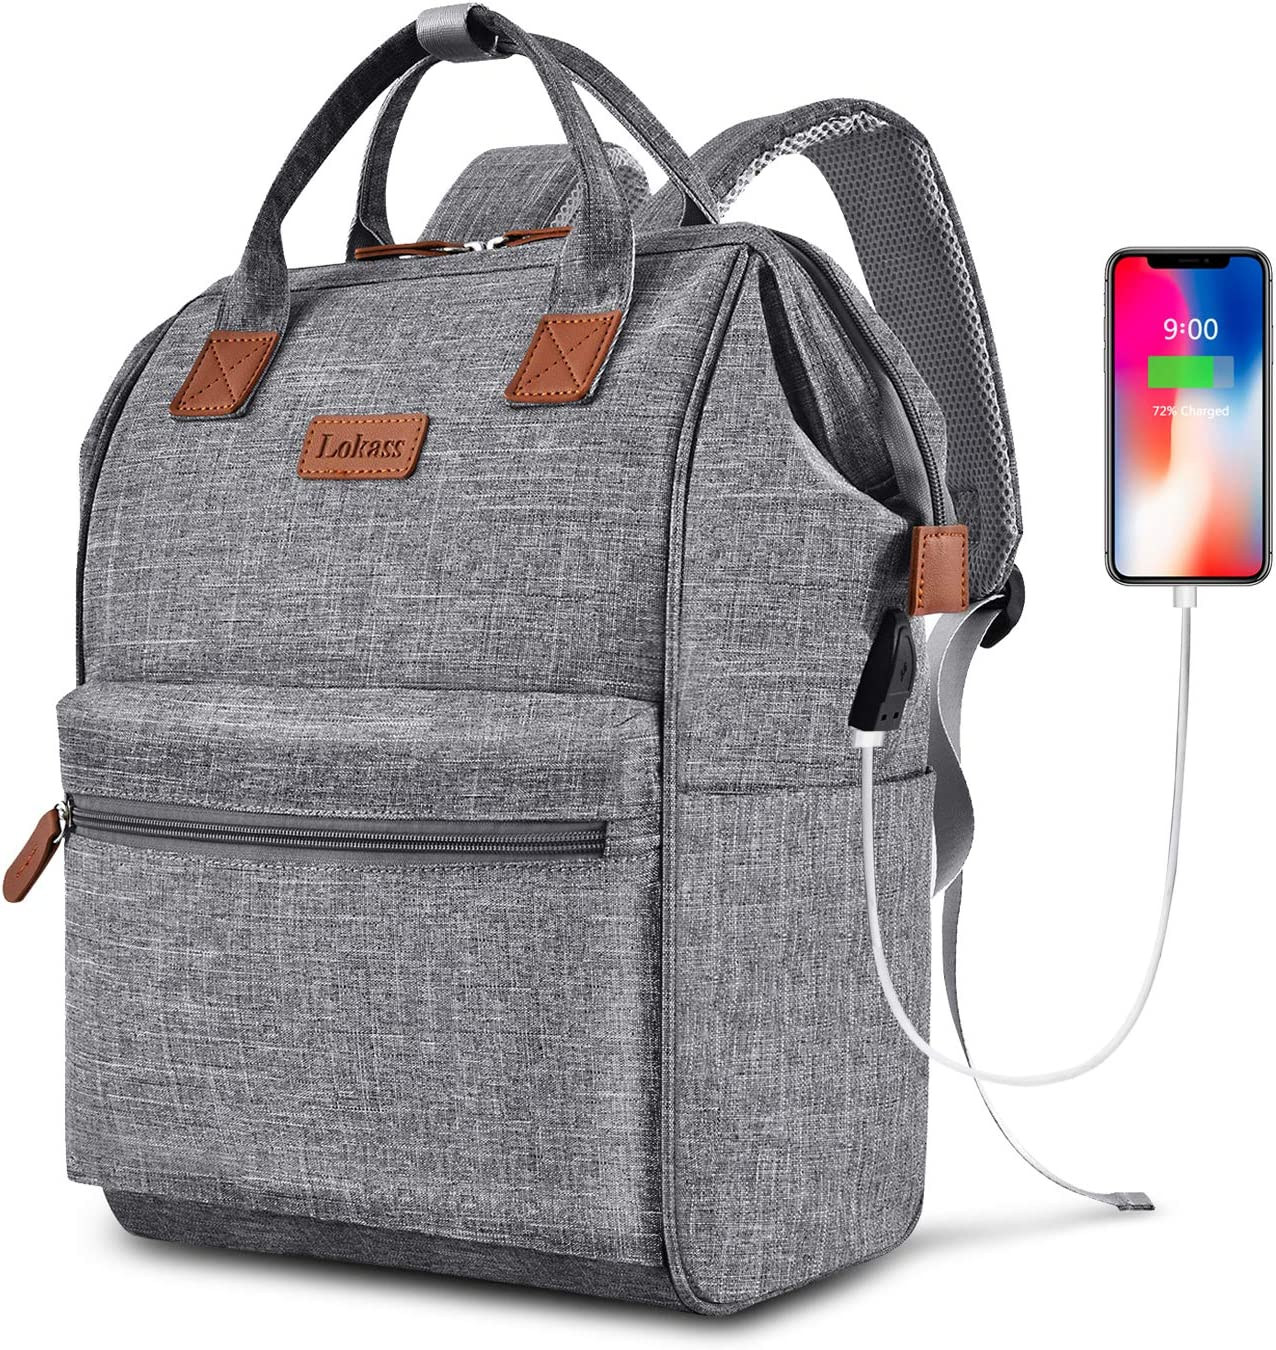 BRINCH Laptop Backpack 15.6 Inch Wide Open Computer Backpack Laptop Bag College Rucksack Water Resistant Business Travel Backpack Multipurpose Casual Daypack with USB Charging Port for Women Men,Gray